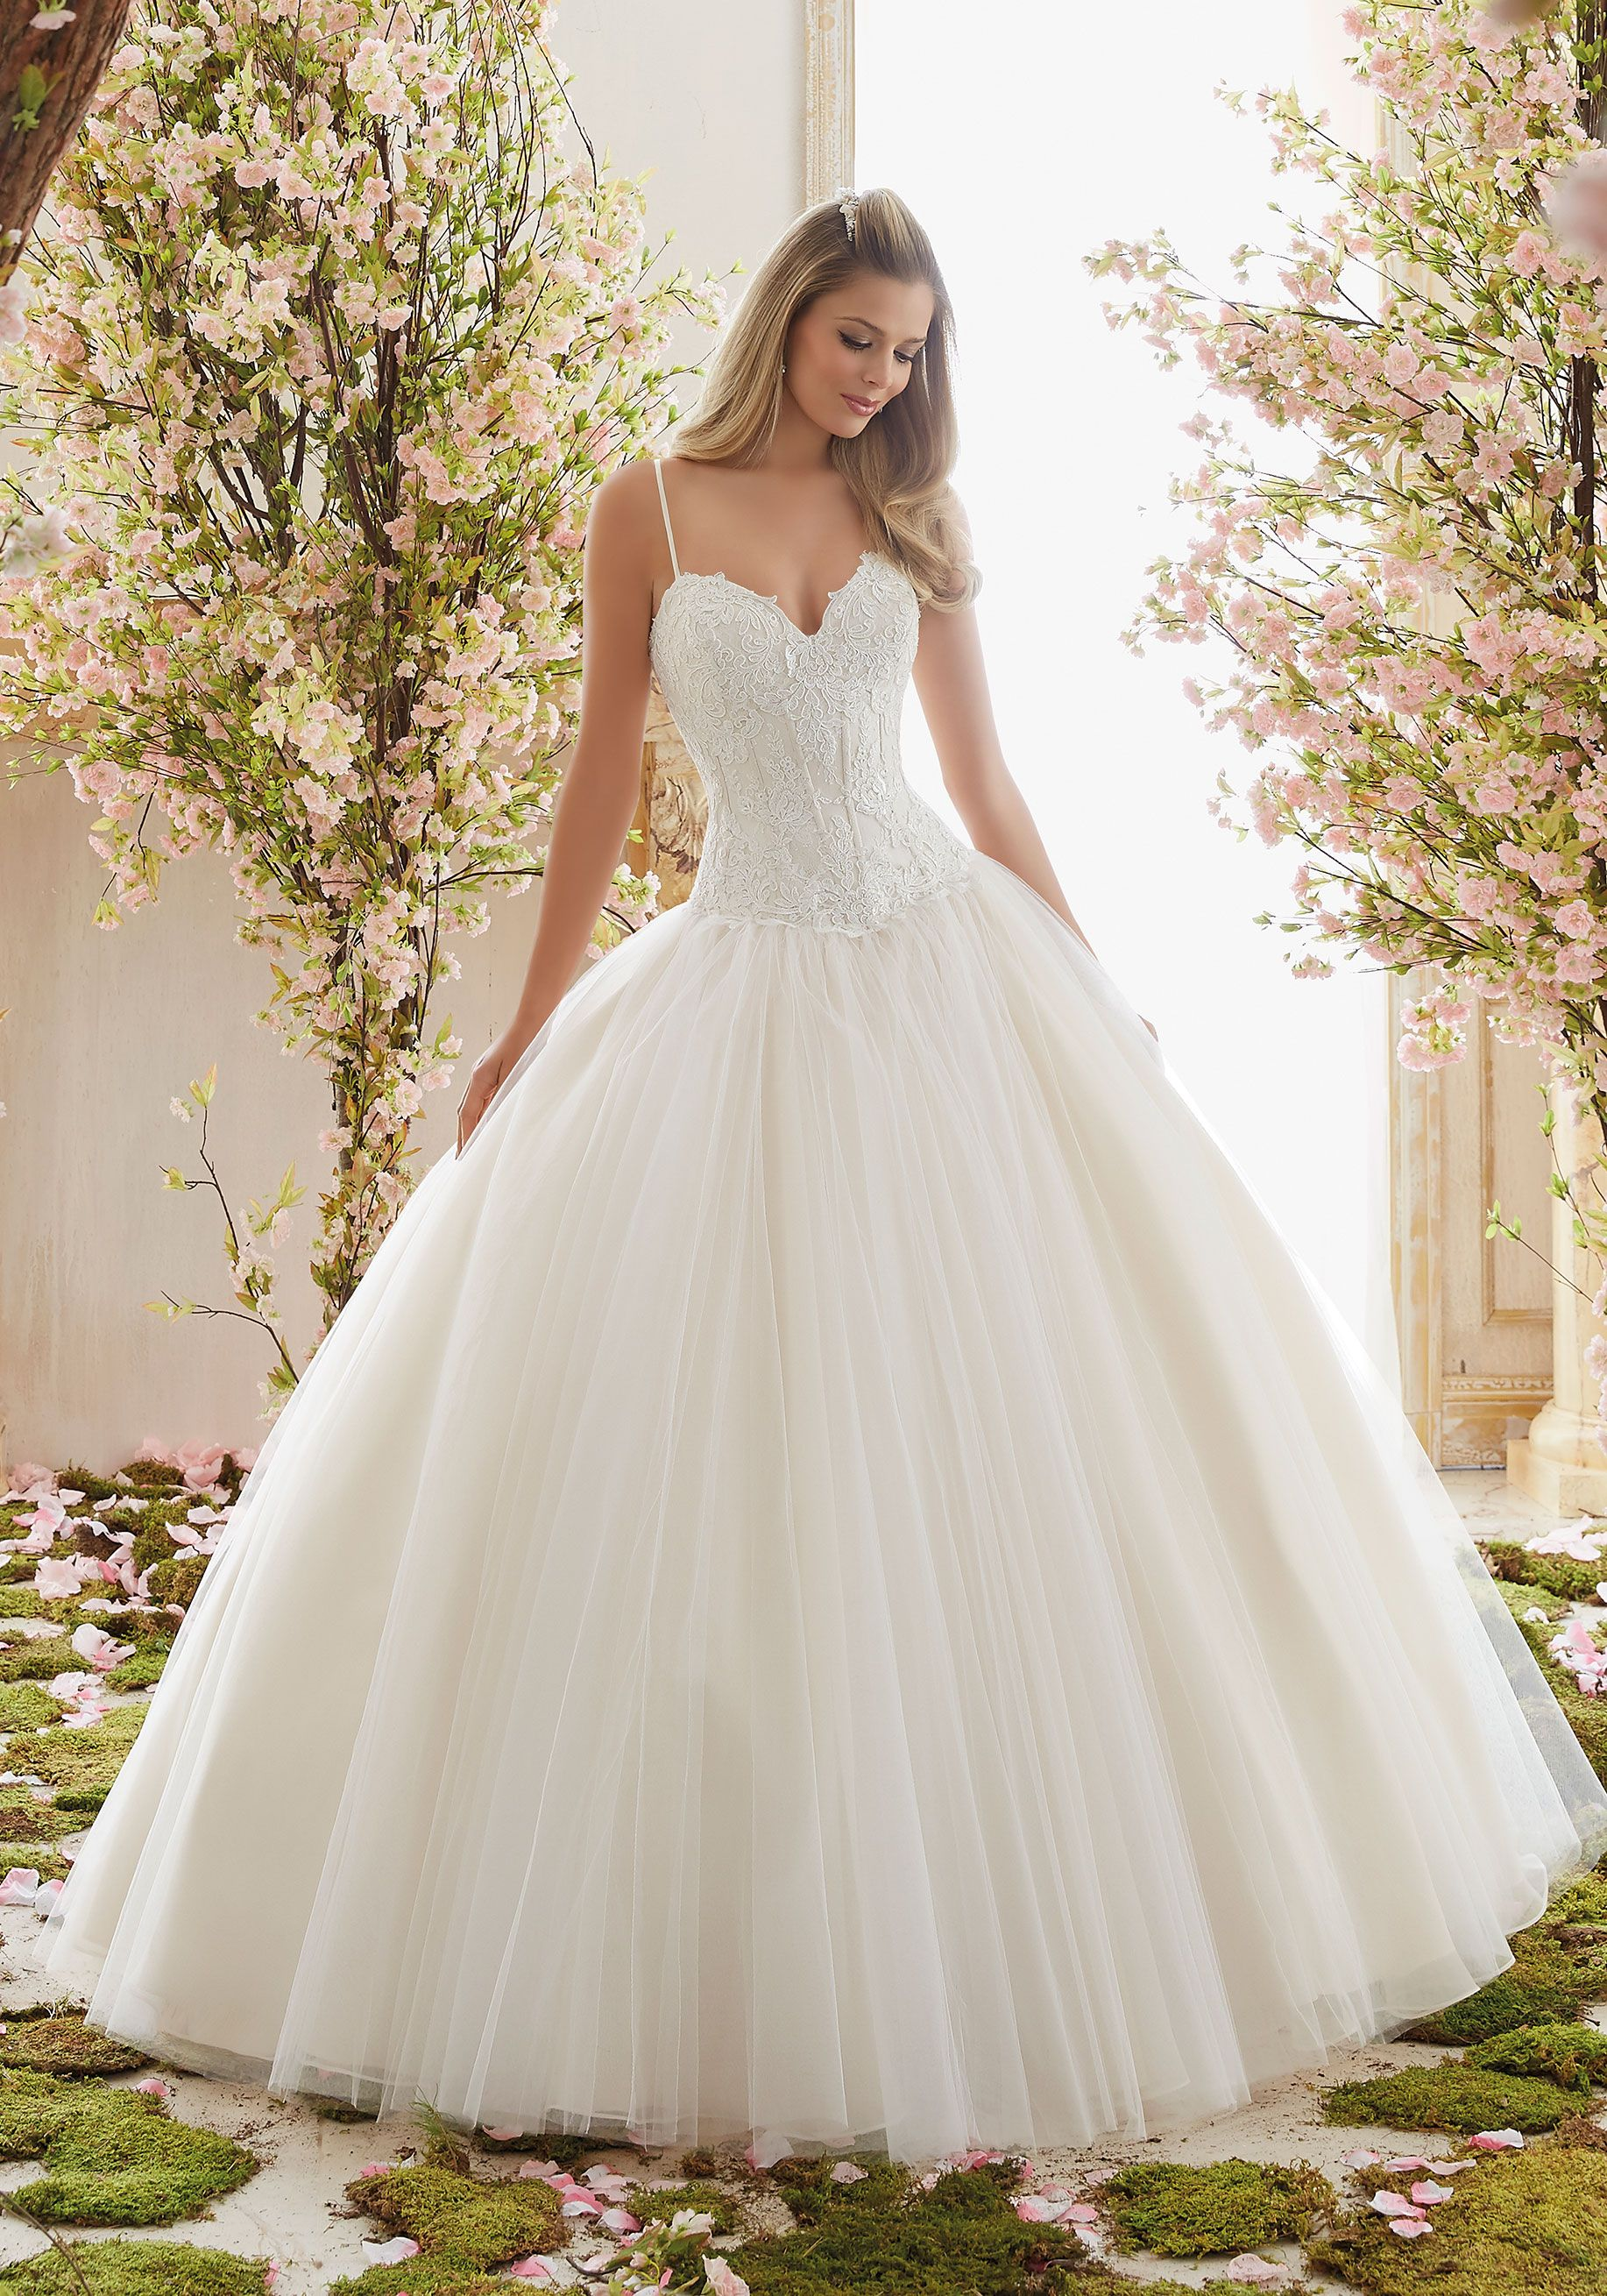 Chantilly Lace on Tulle Ball Gown Wedding Dress | Morilee